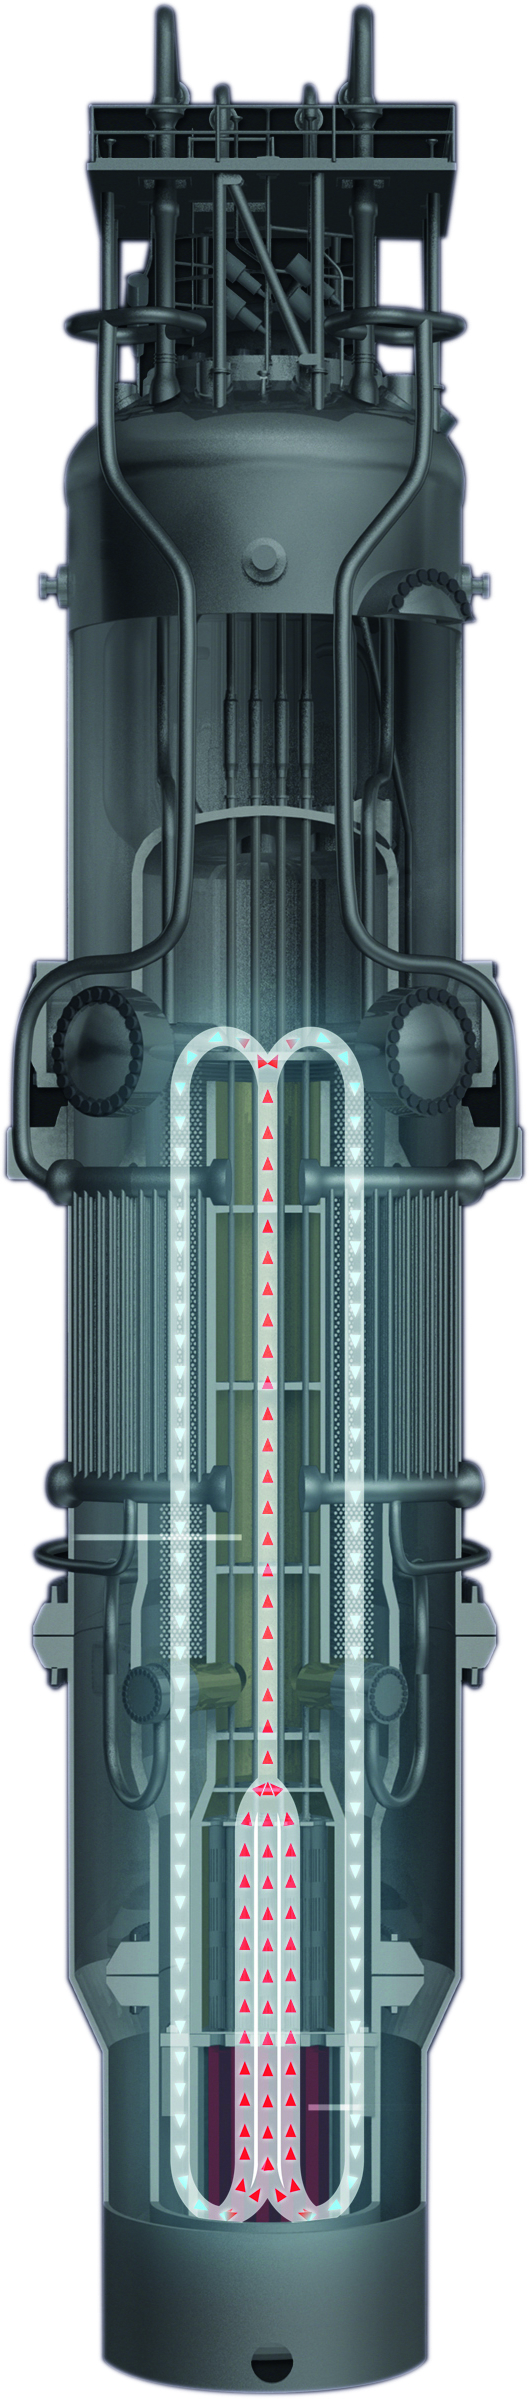 The NuScale SMR design, with the 9.5tonne reactor head husing the cotrol system and coolant access